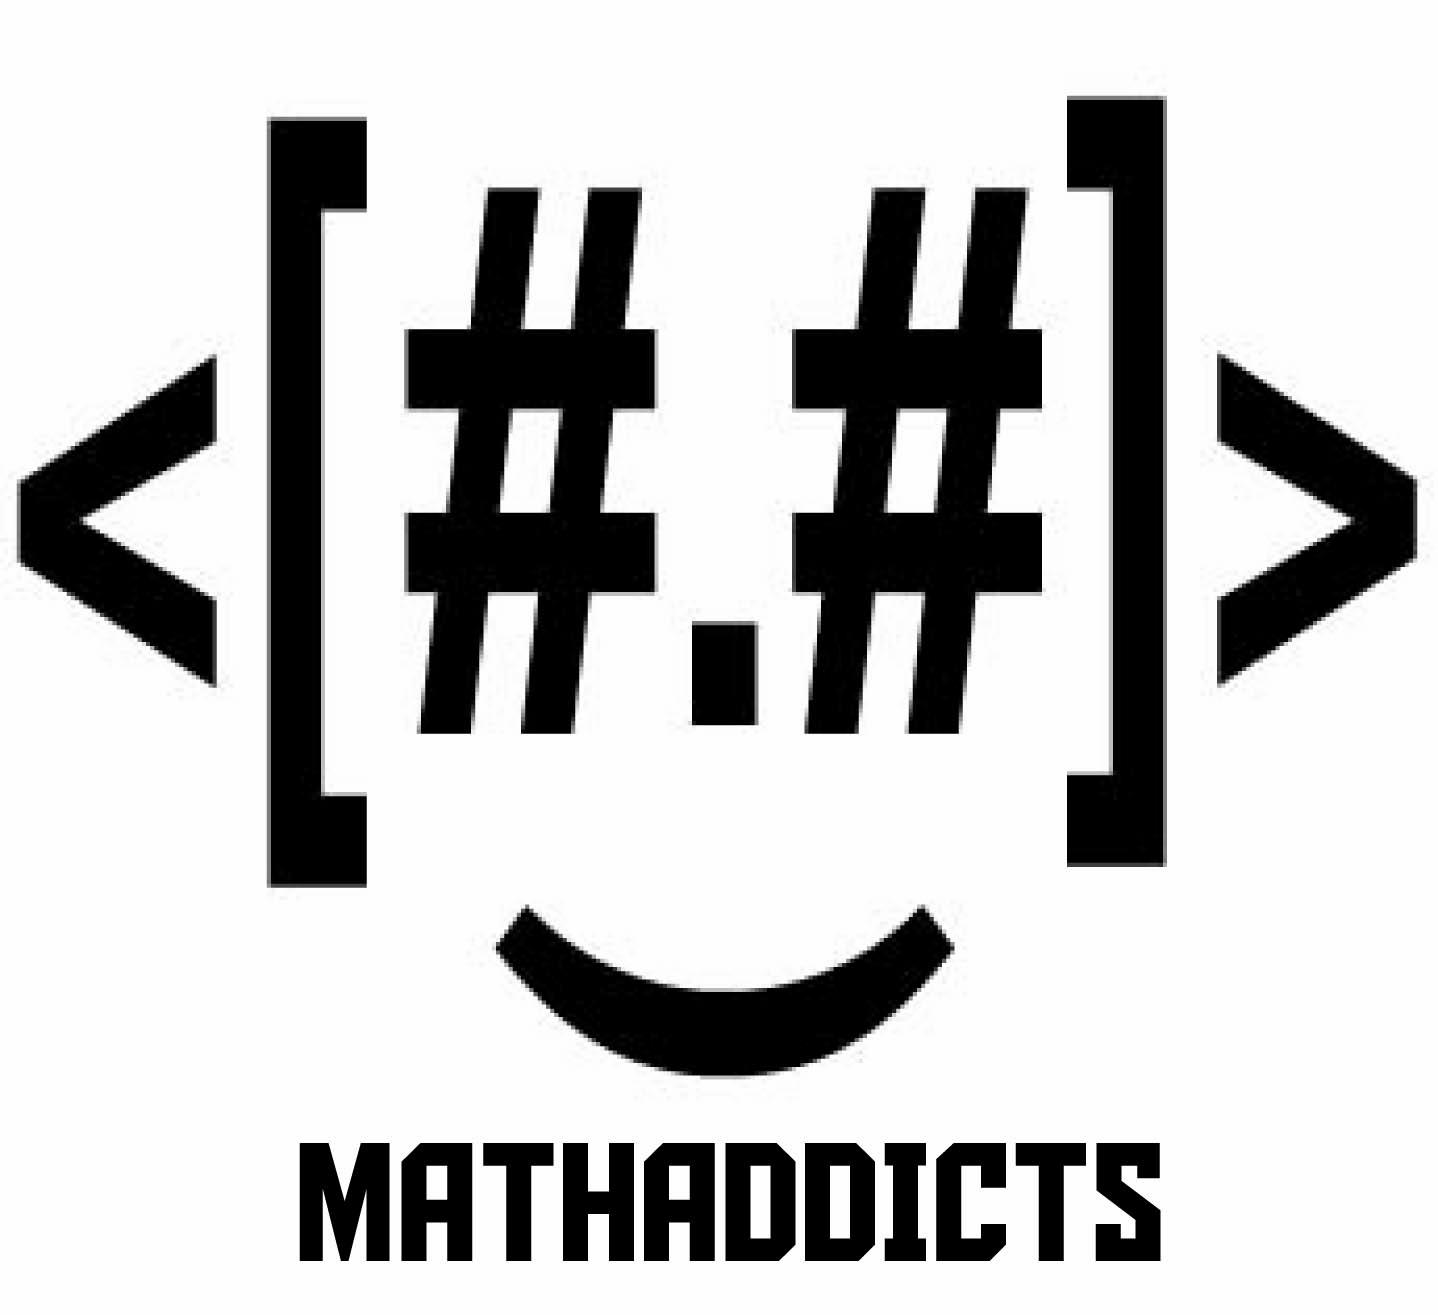 MathAddicts Thought Provoking - image 2 - student project